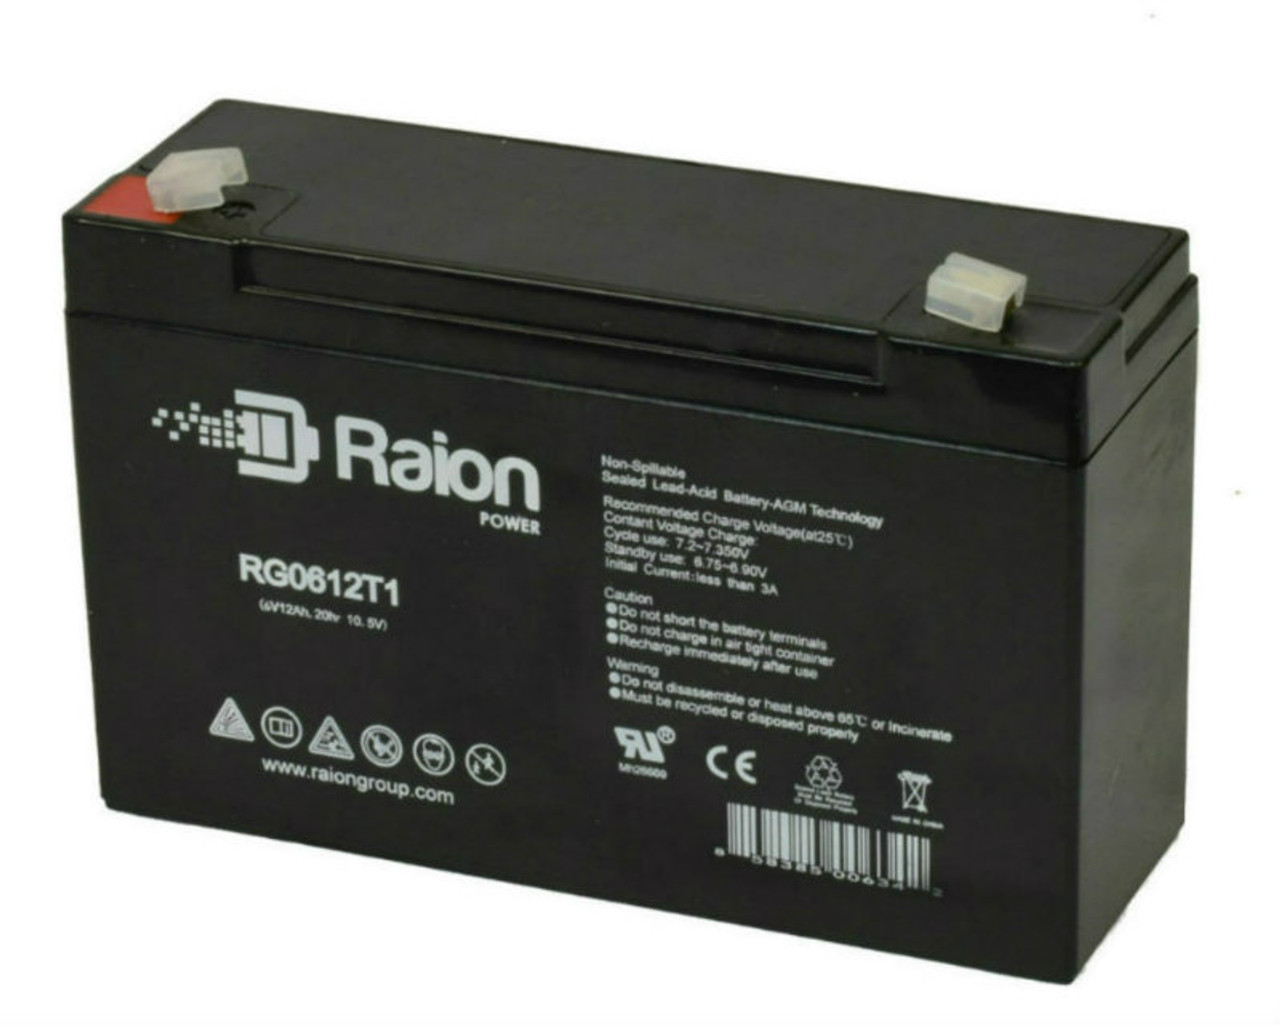 Raion Power RG06120T1 Replacement Battery Pack for Holophane E112 emergency light